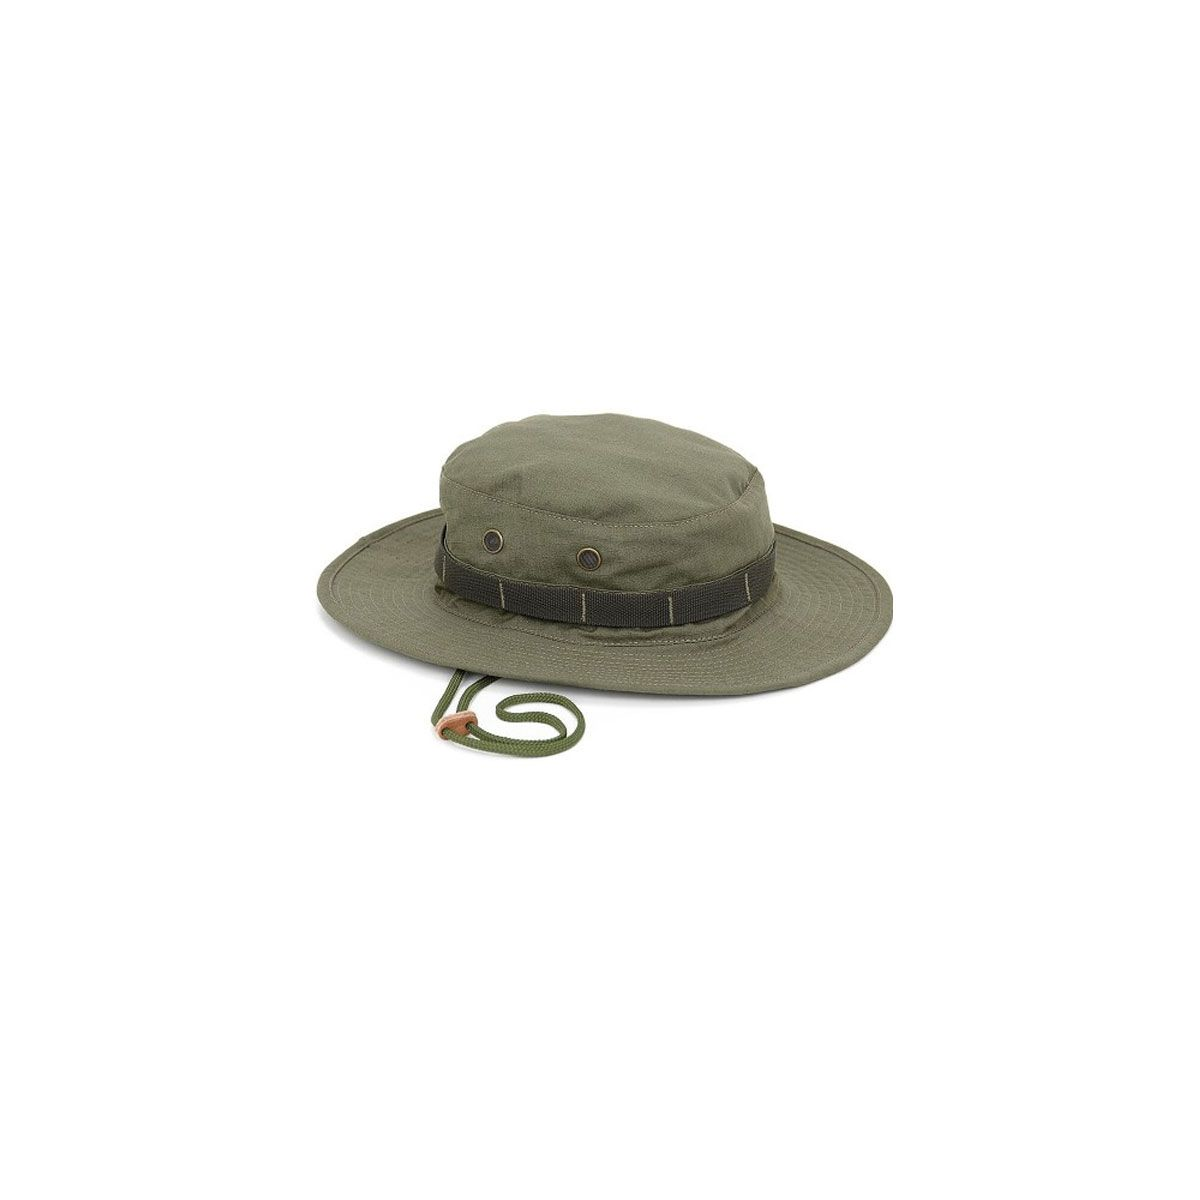 Bonnie Hat For Honor em Ripstop Olive Drab